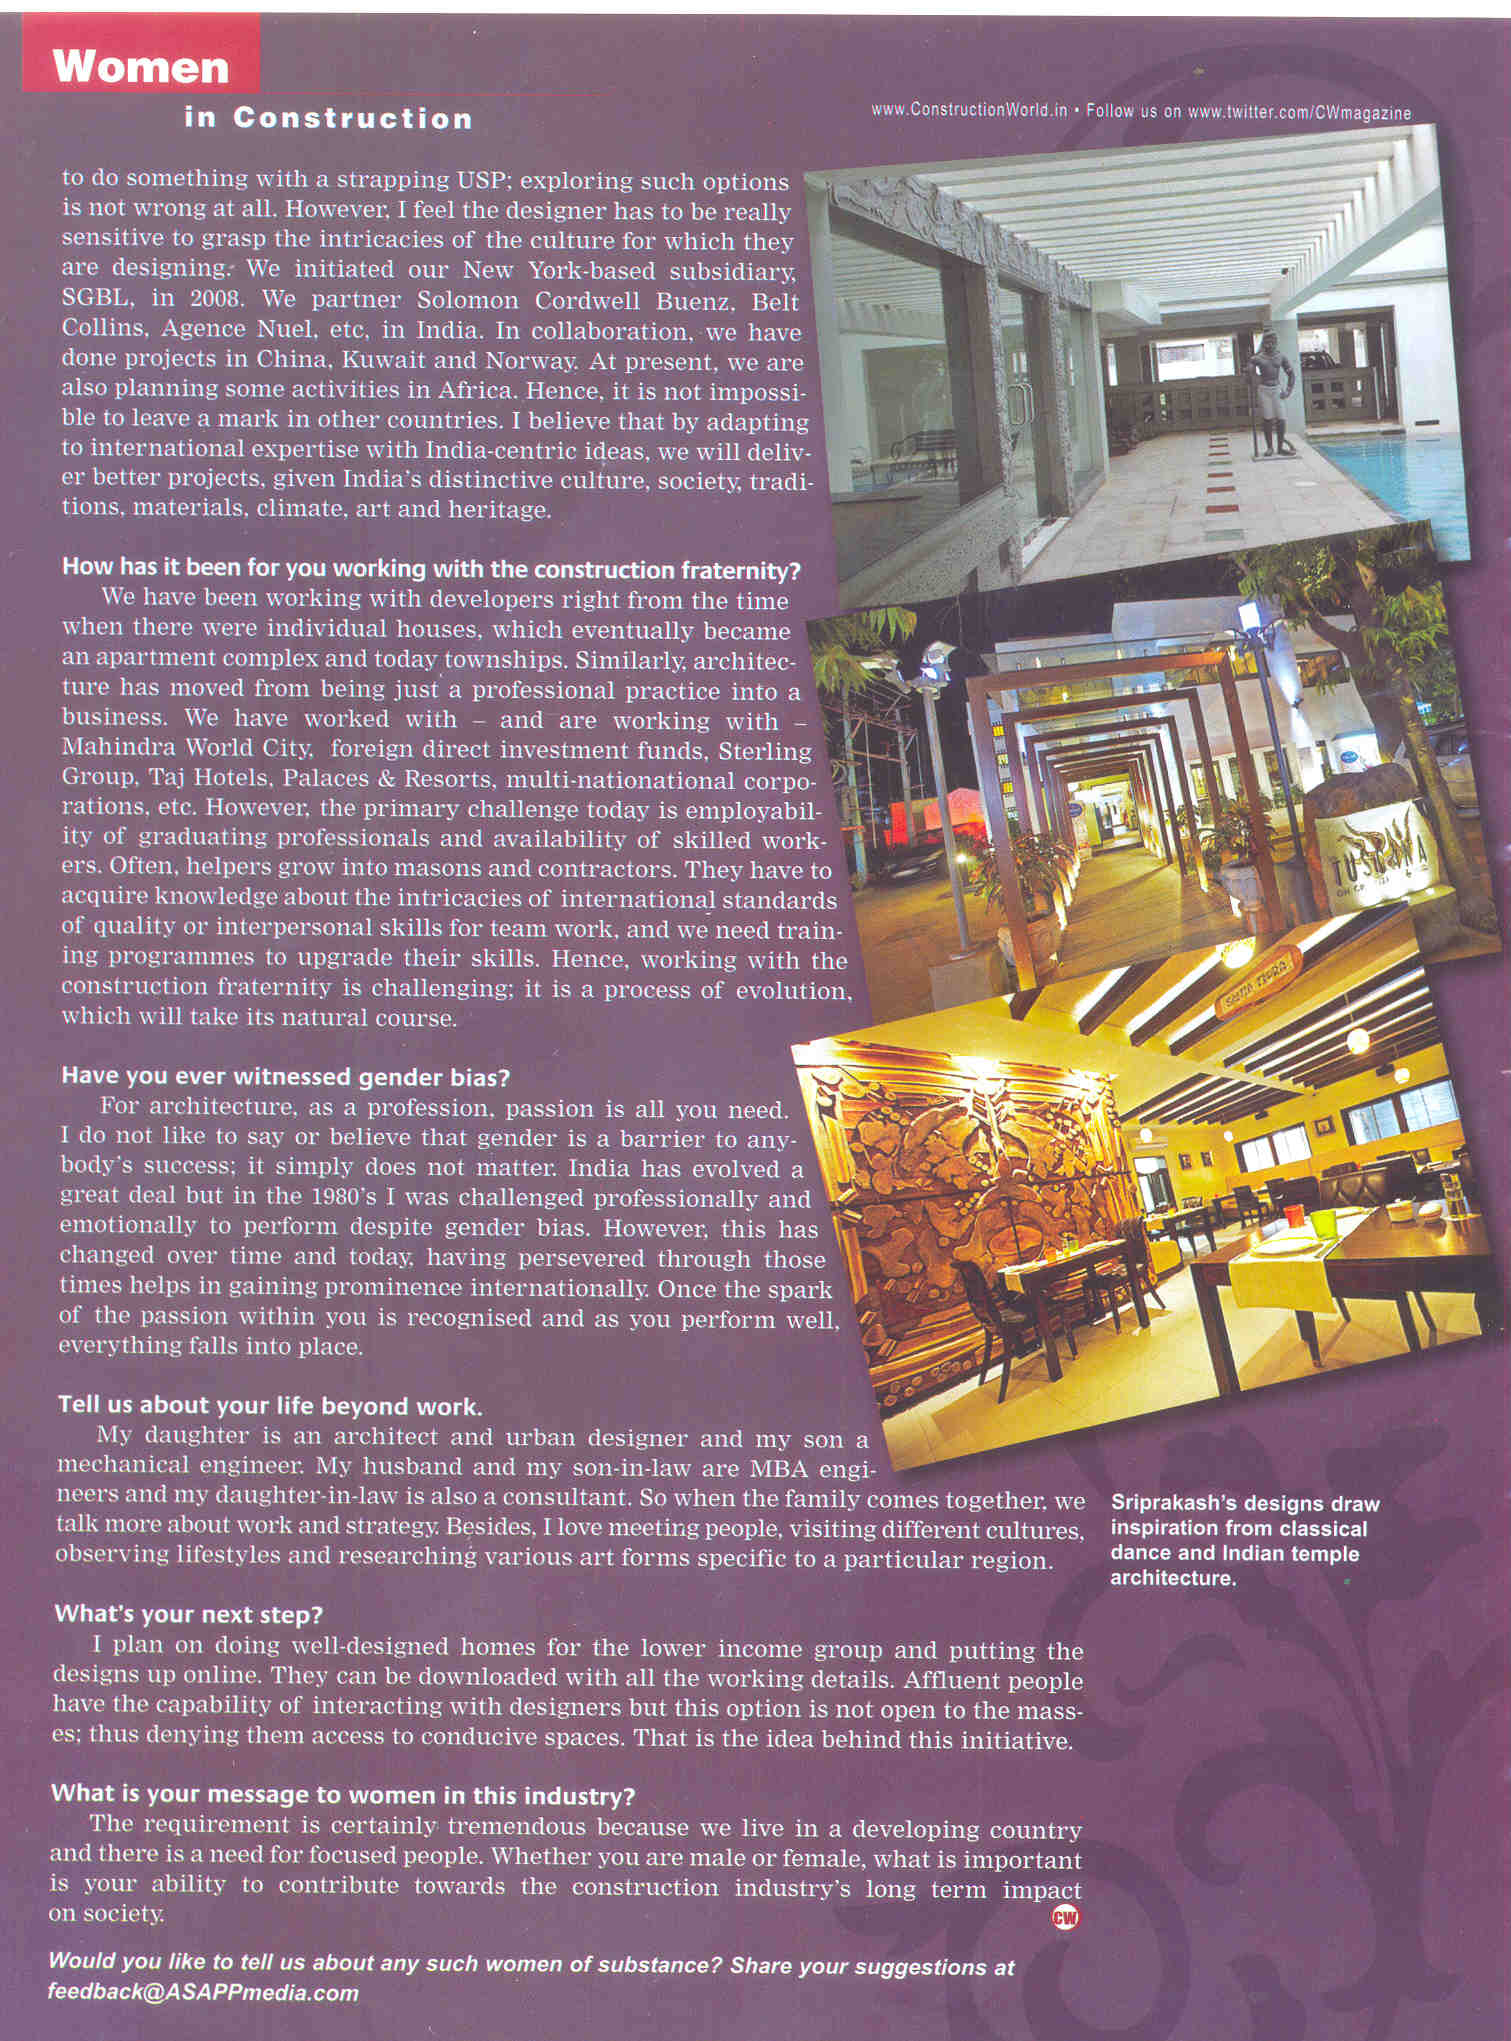 Construction World, Nov 2012: Women in Construction interview with Sheila Sri Prakash of Shilpa Architects